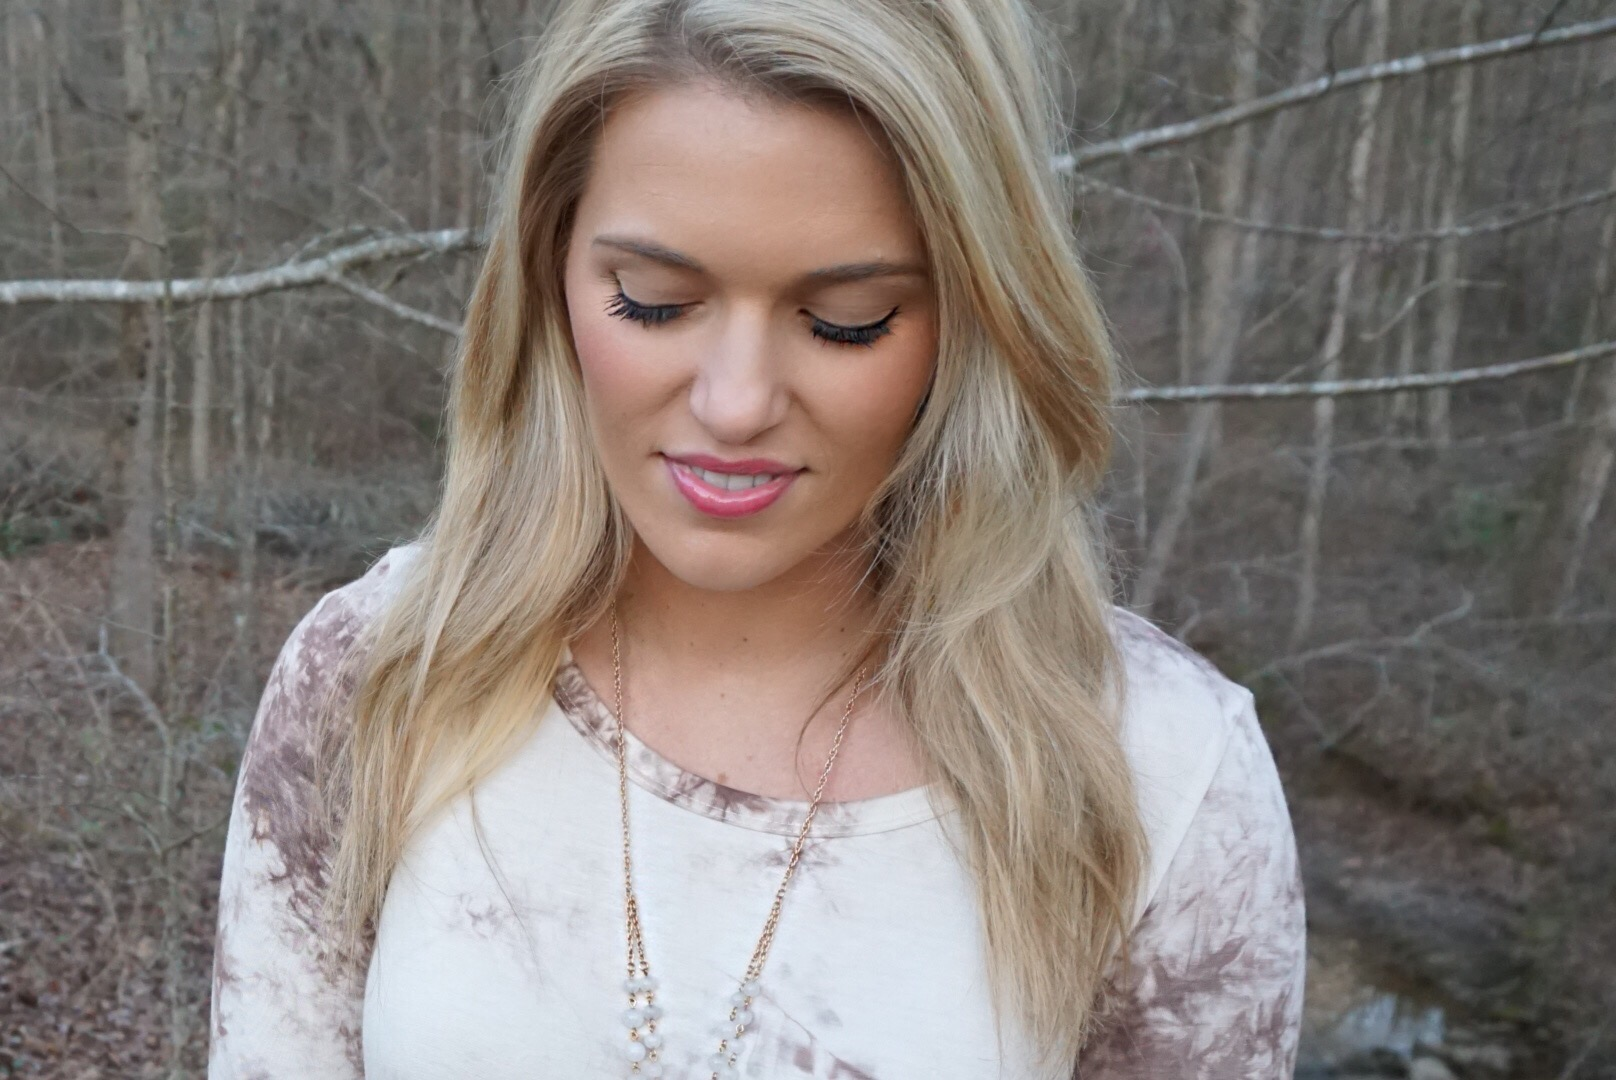 Textured waves with Theorie Quantum Switch Curling Wand